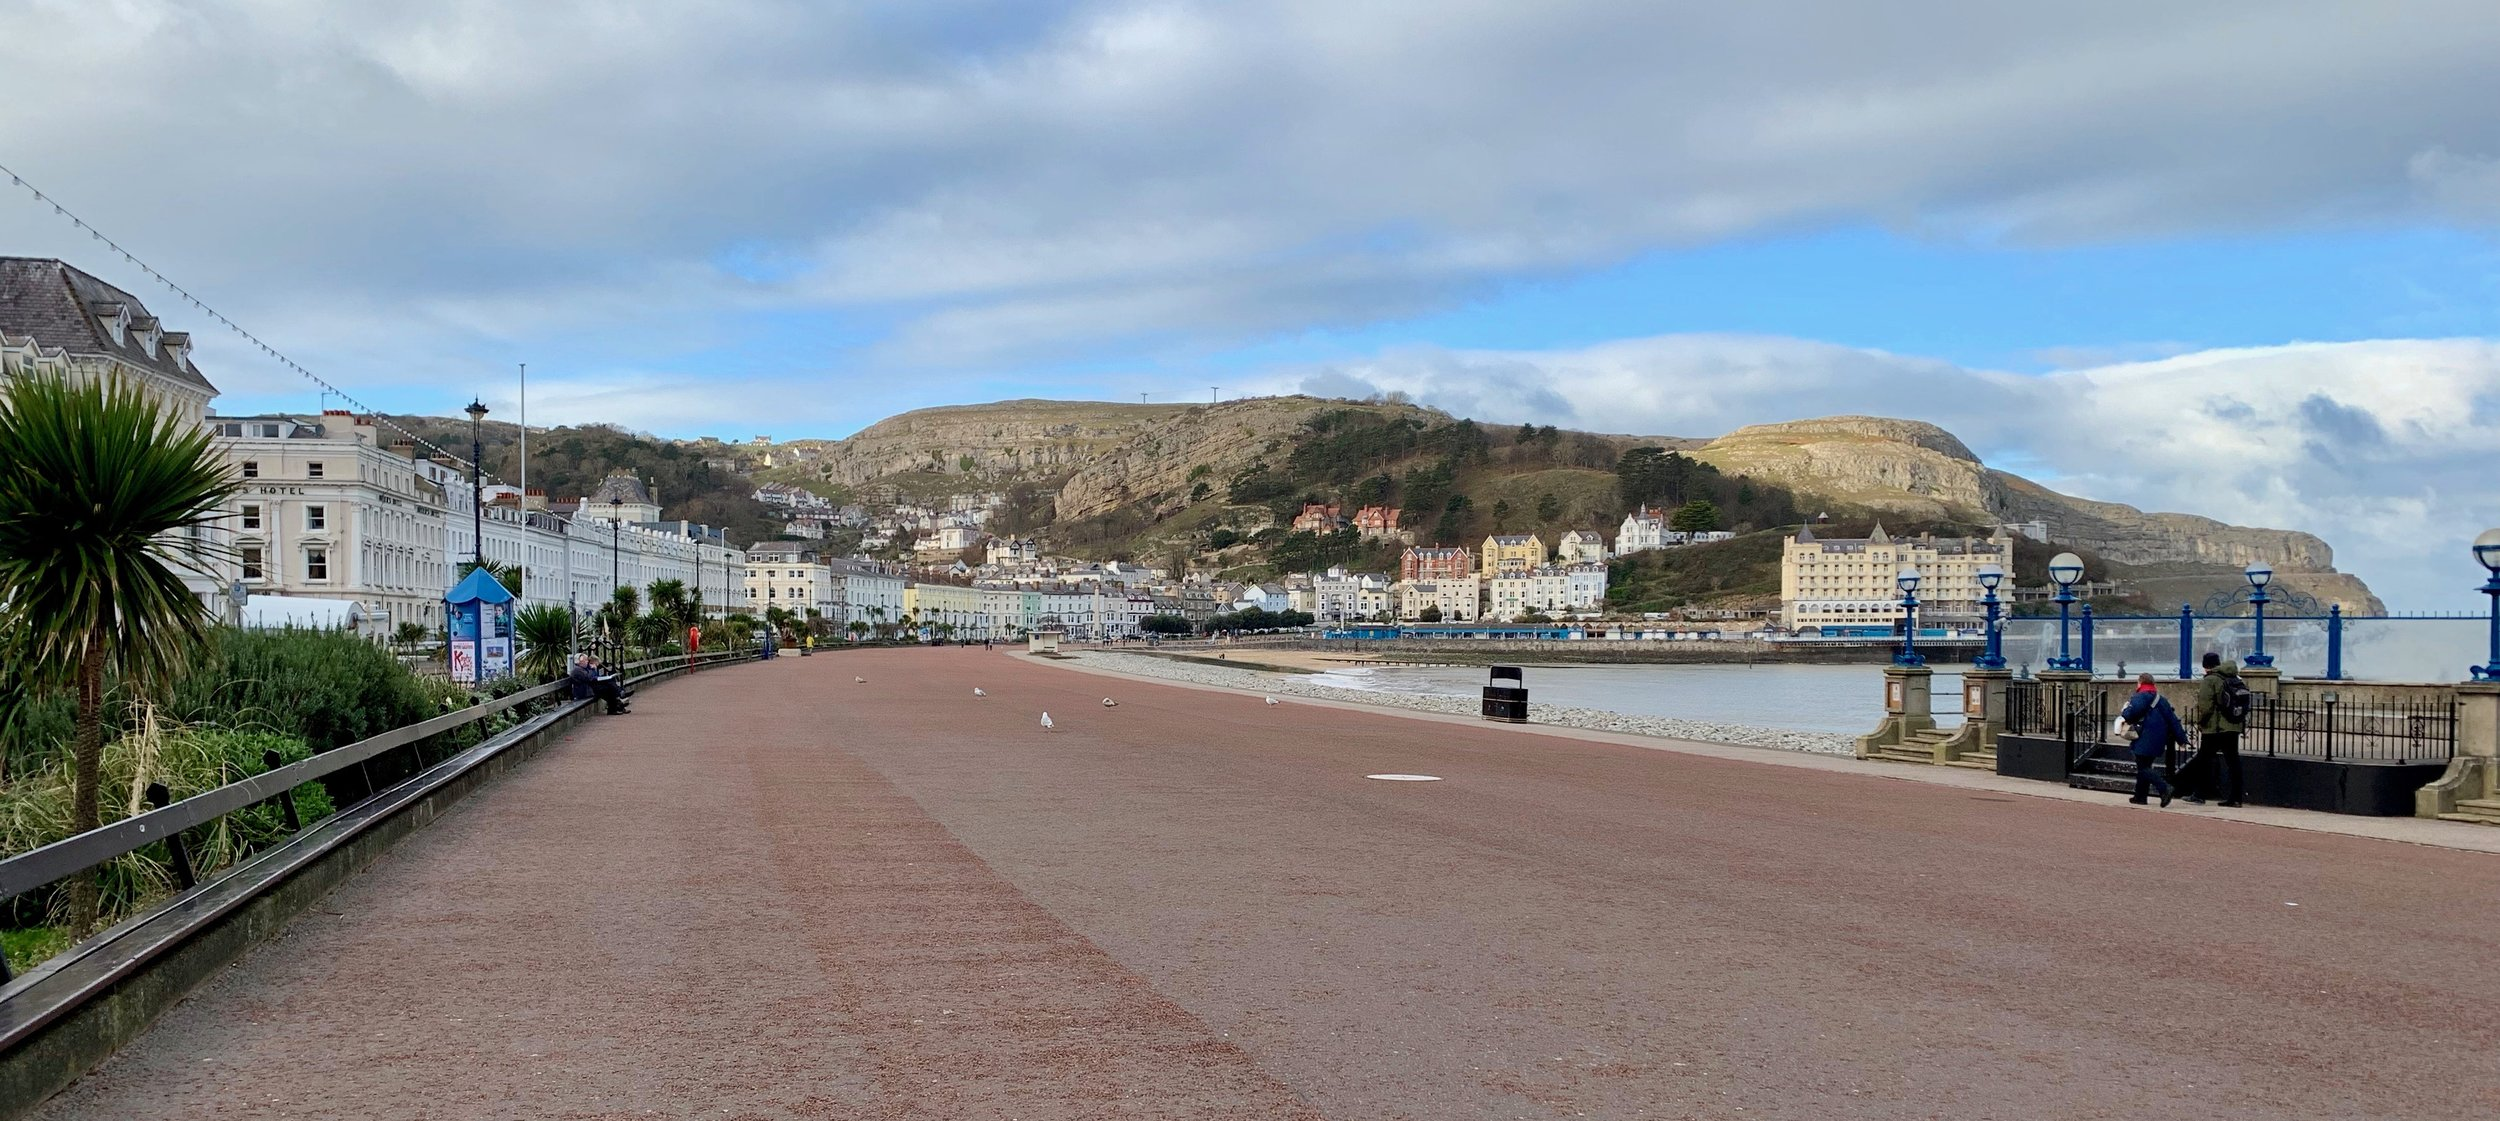 The beach at Llandudno, Wales